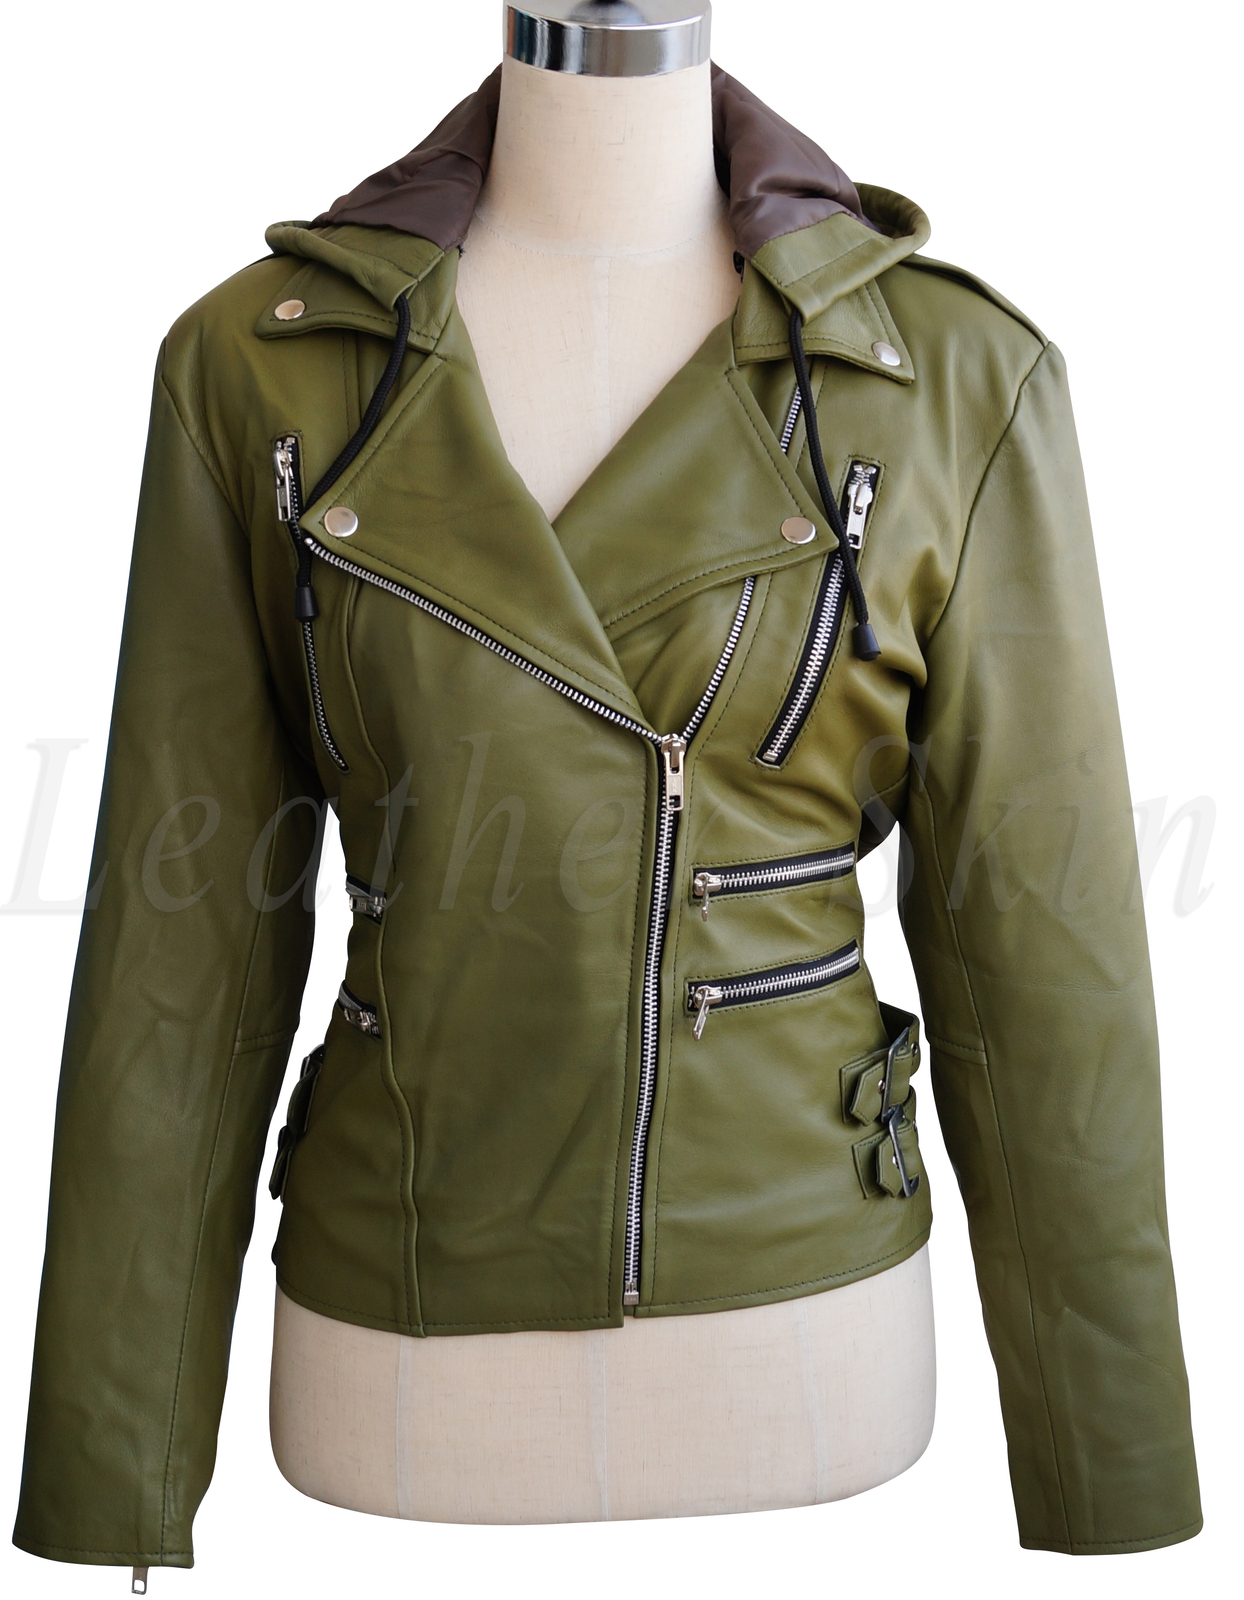 Womens green leather jacket with hood